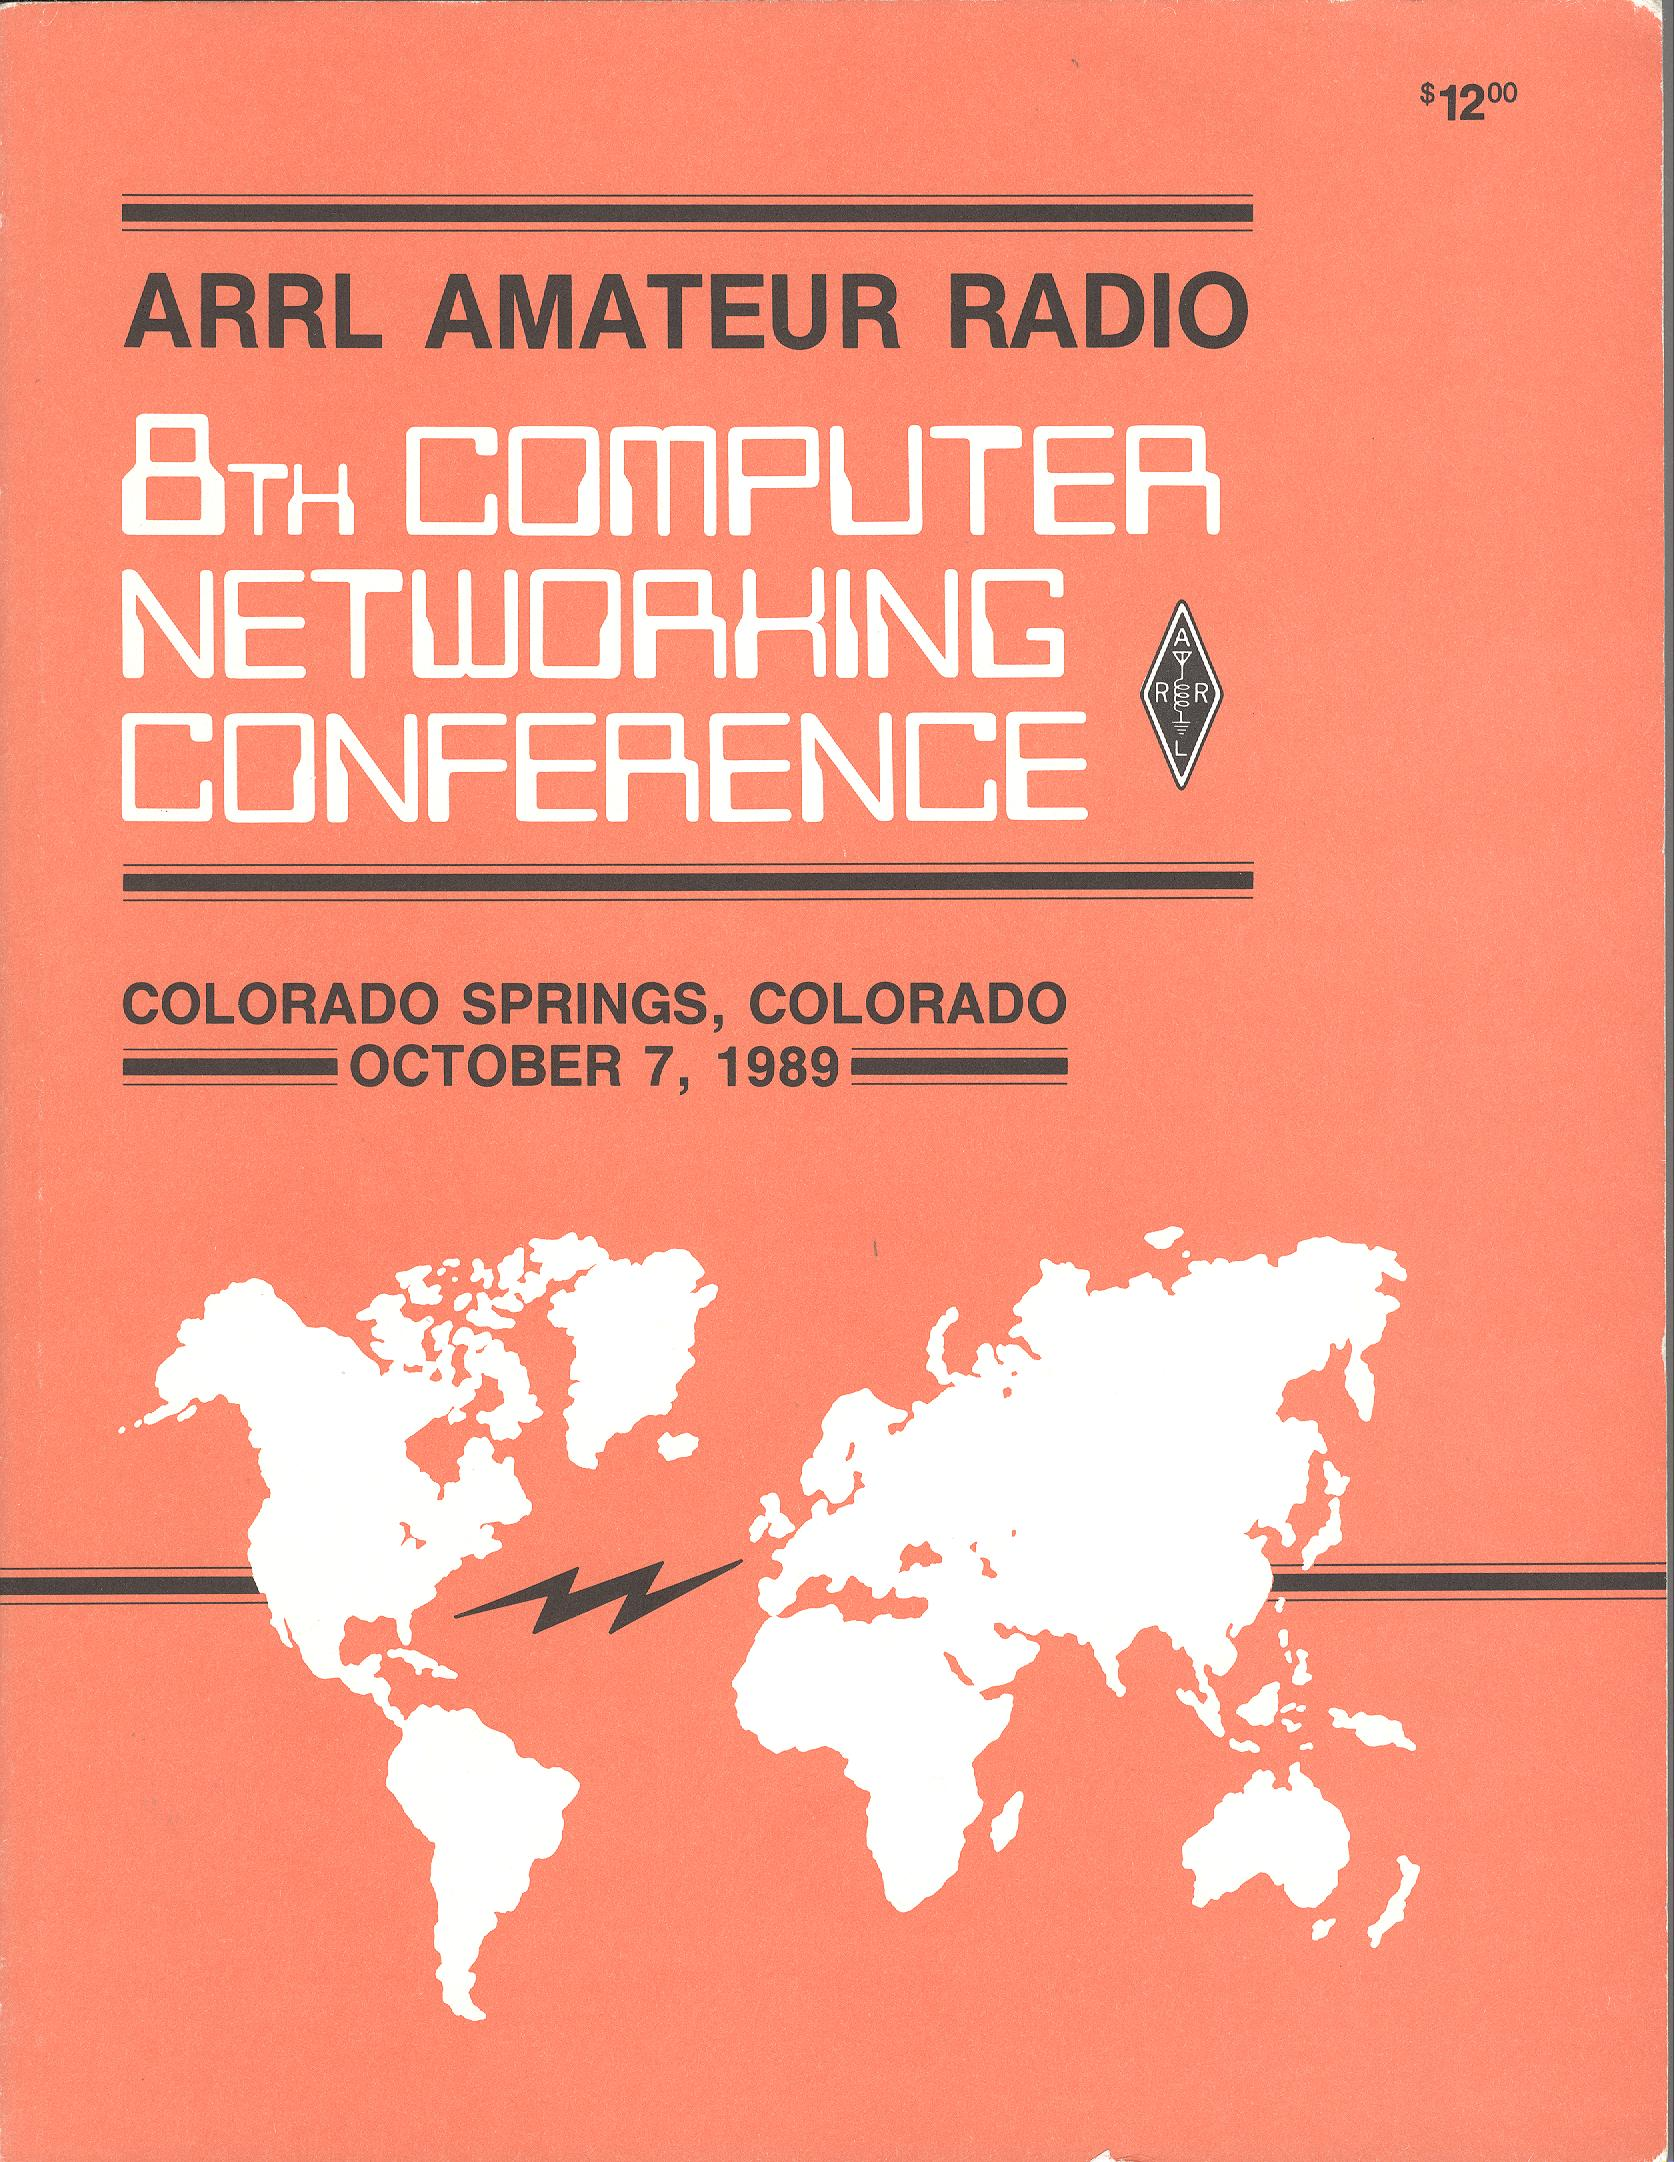 8th Computer Networking Conference